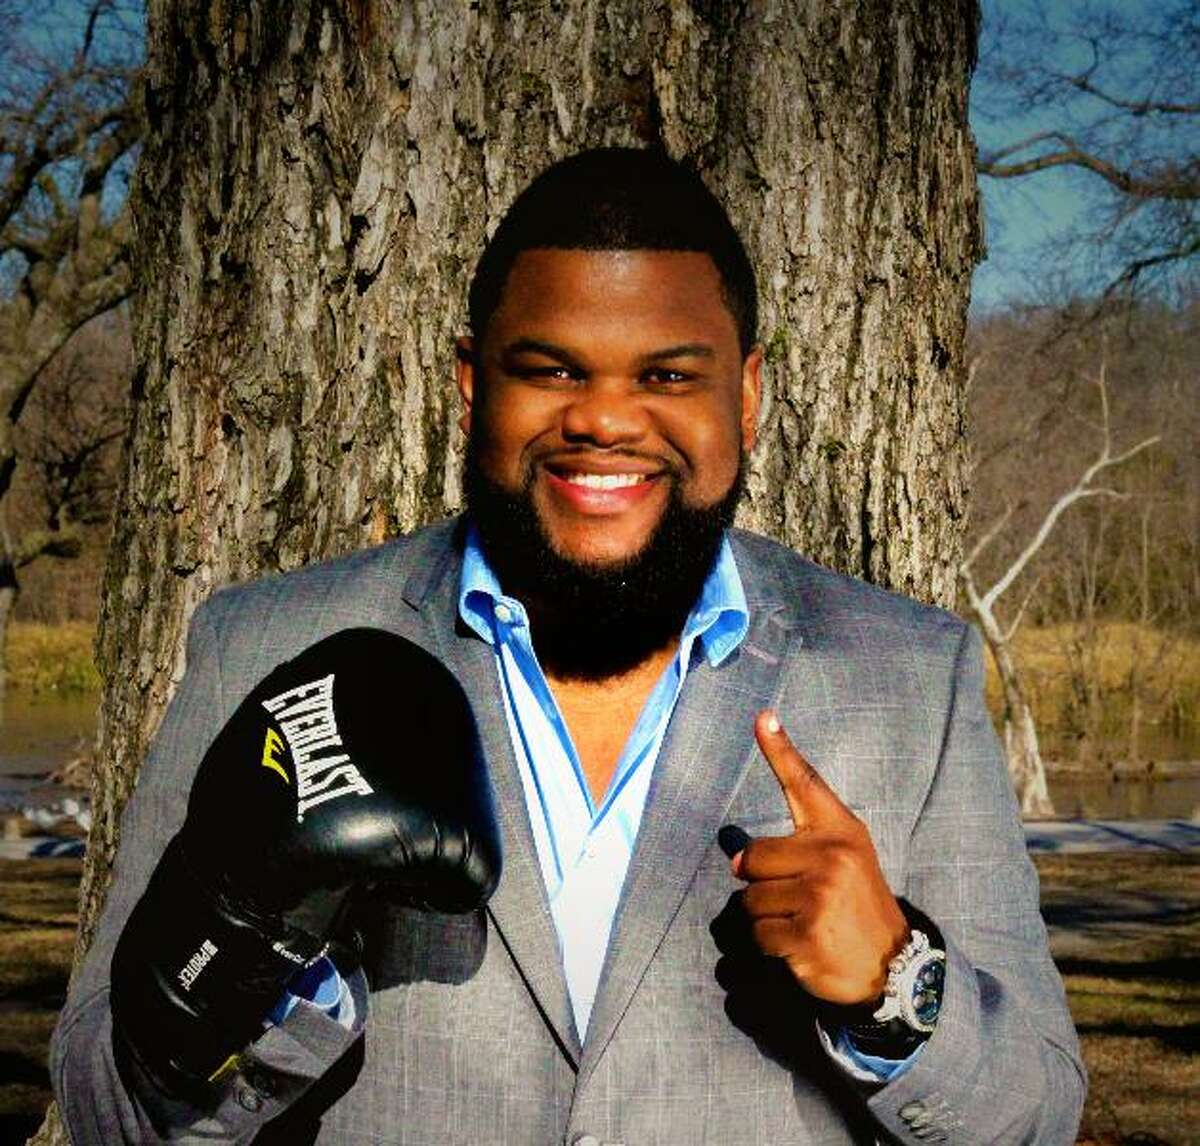 Adrian Clark, 29 Owner of AC Sports Management, LLC FromDallas, Texas 30 Under 30: Sports Clark is the owner of AC Sports Management, LLC, which brings a refreshing approach centered around humility and compassion to the world of sports management. The management company started in 2012 and represents a roster of young, talented boxers. Source: Forbes